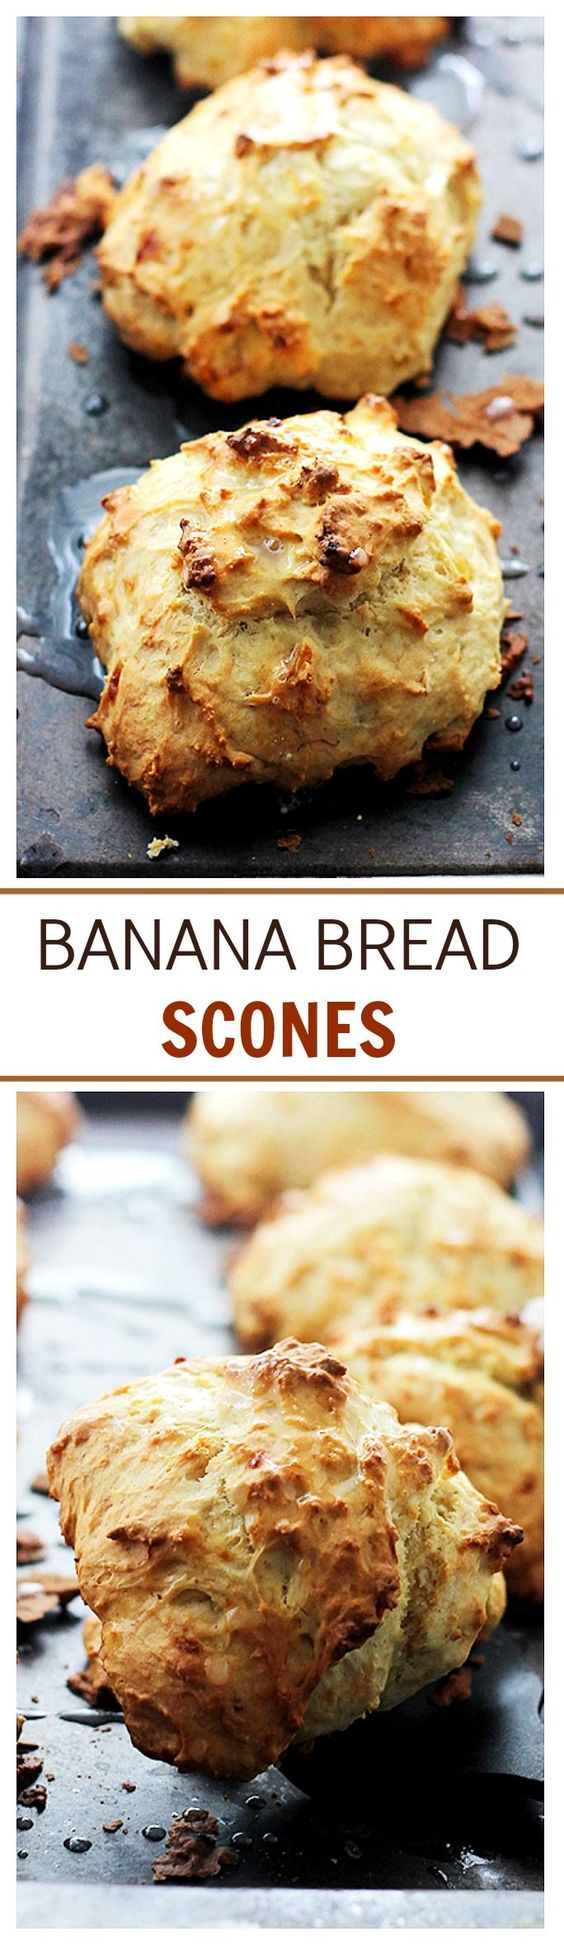 Banana Bread Scones: The sweet and delicious taste of Banana Bread in ...